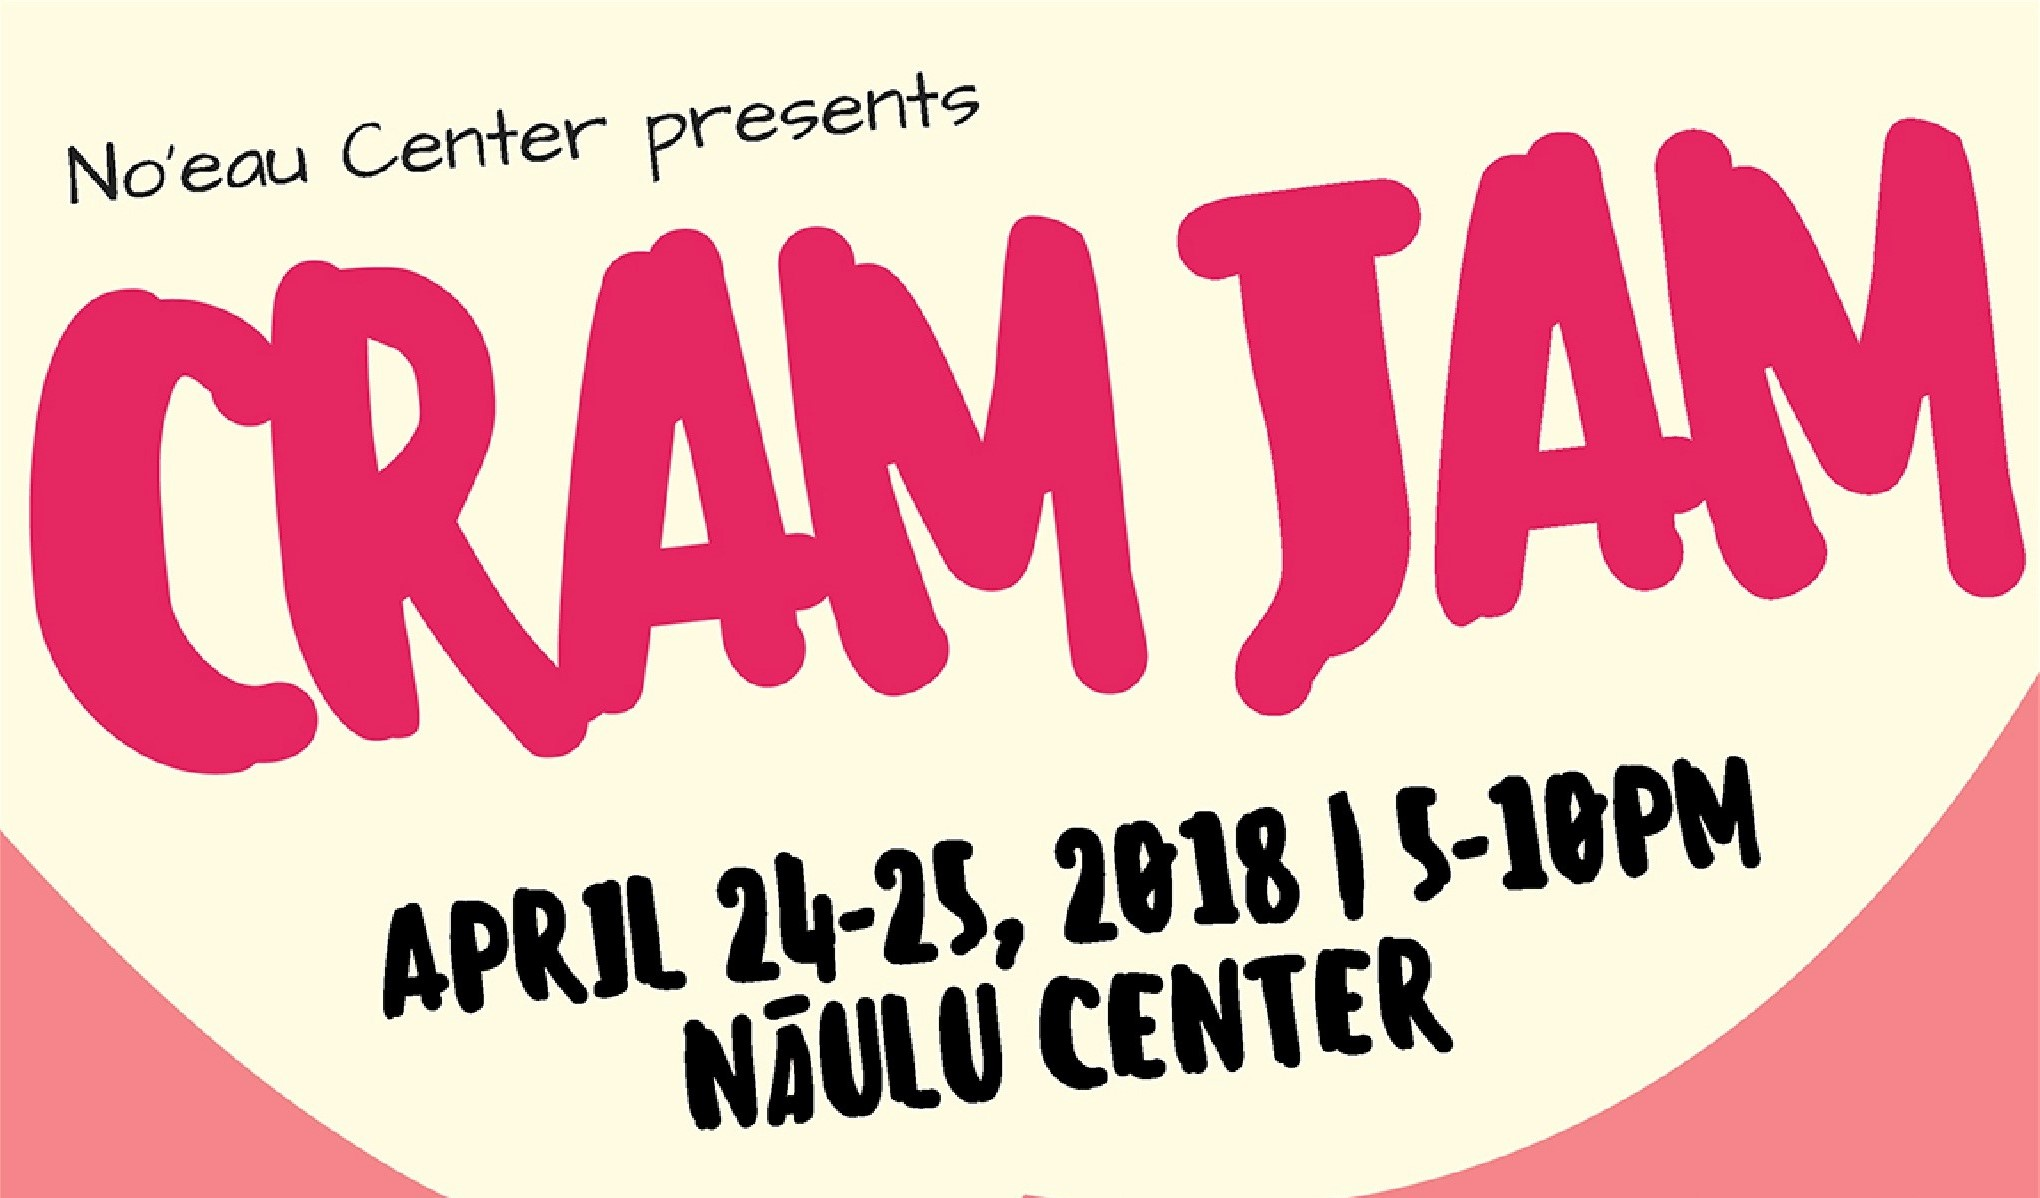 Flyer for Cram Jam